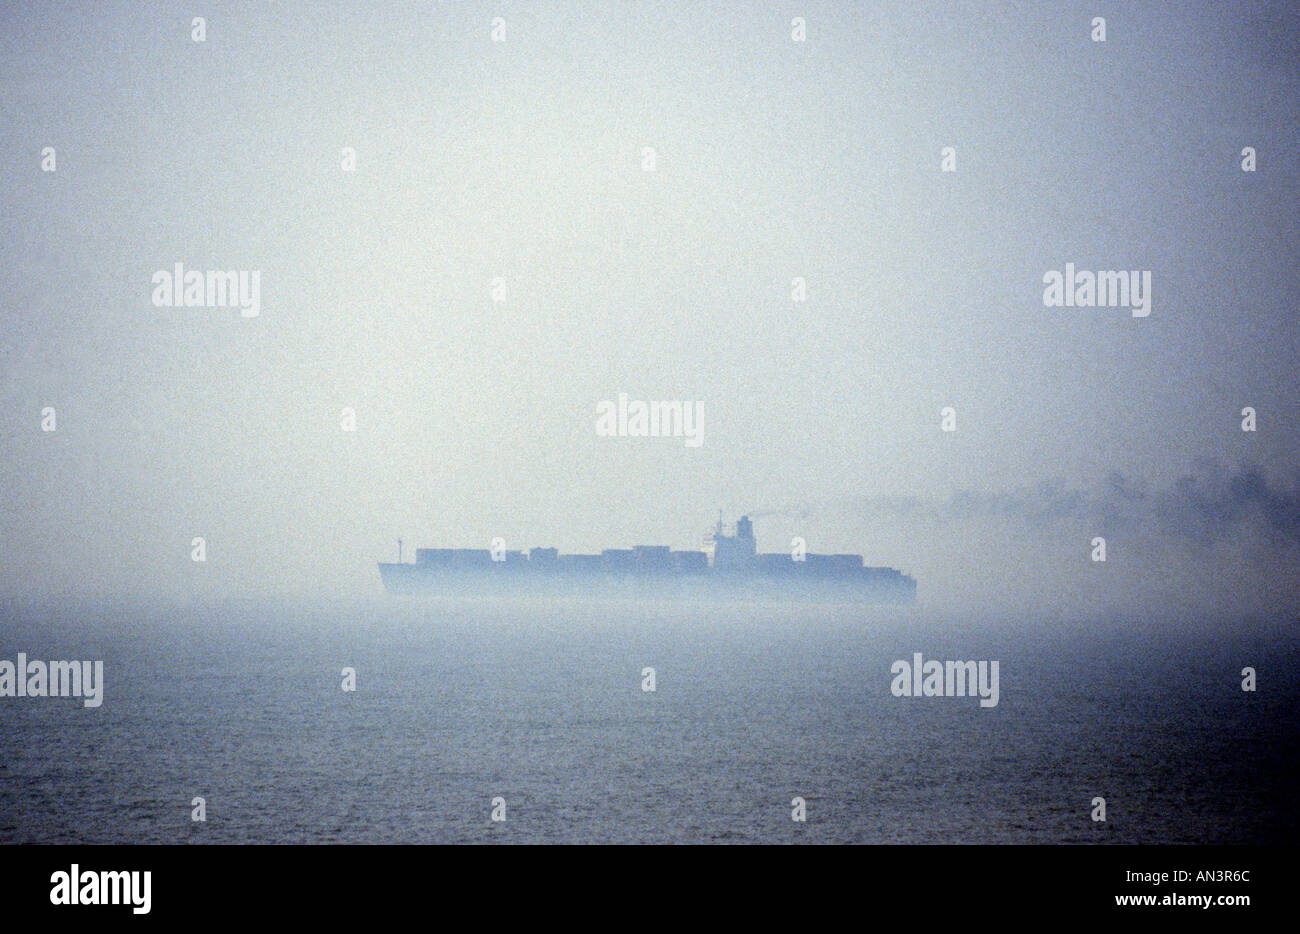 Container ship in fog leaving the Port of Felixstowe, Suffolk, UK. - Stock Image